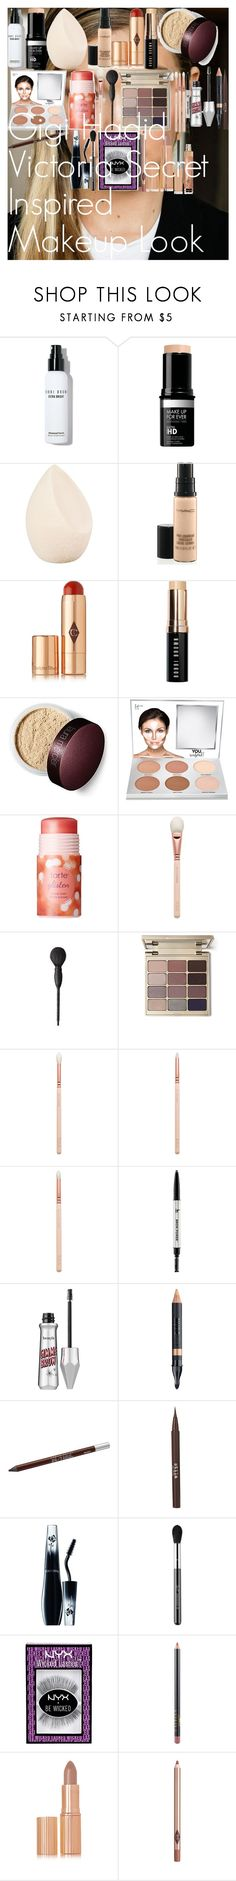 """Gigi Hadid Victoria Secret Inspired Makeup Look"" by oroartye-1 on Polyvore featuring beauty, Bobbi Brown Cosmetics, MAKE UP FOR EVER, Christian Dior, MAC Cosmetics, Charlotte Tilbury, It Cosmetics, tarte, ZOEVA and Benefit"